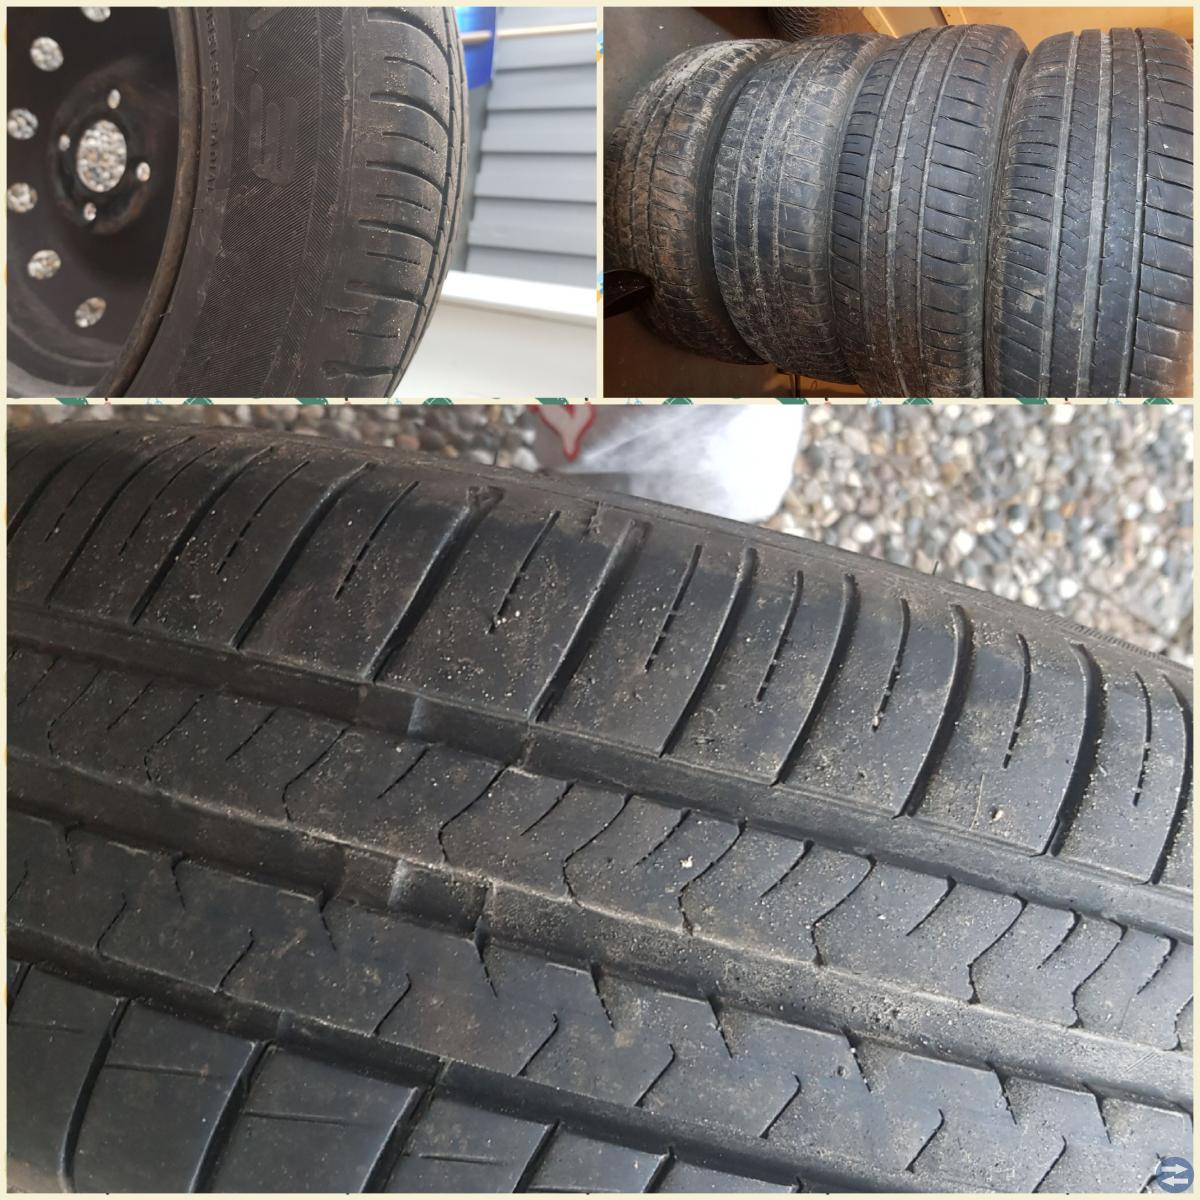 4/100 Mecotra 3 185/60 R15